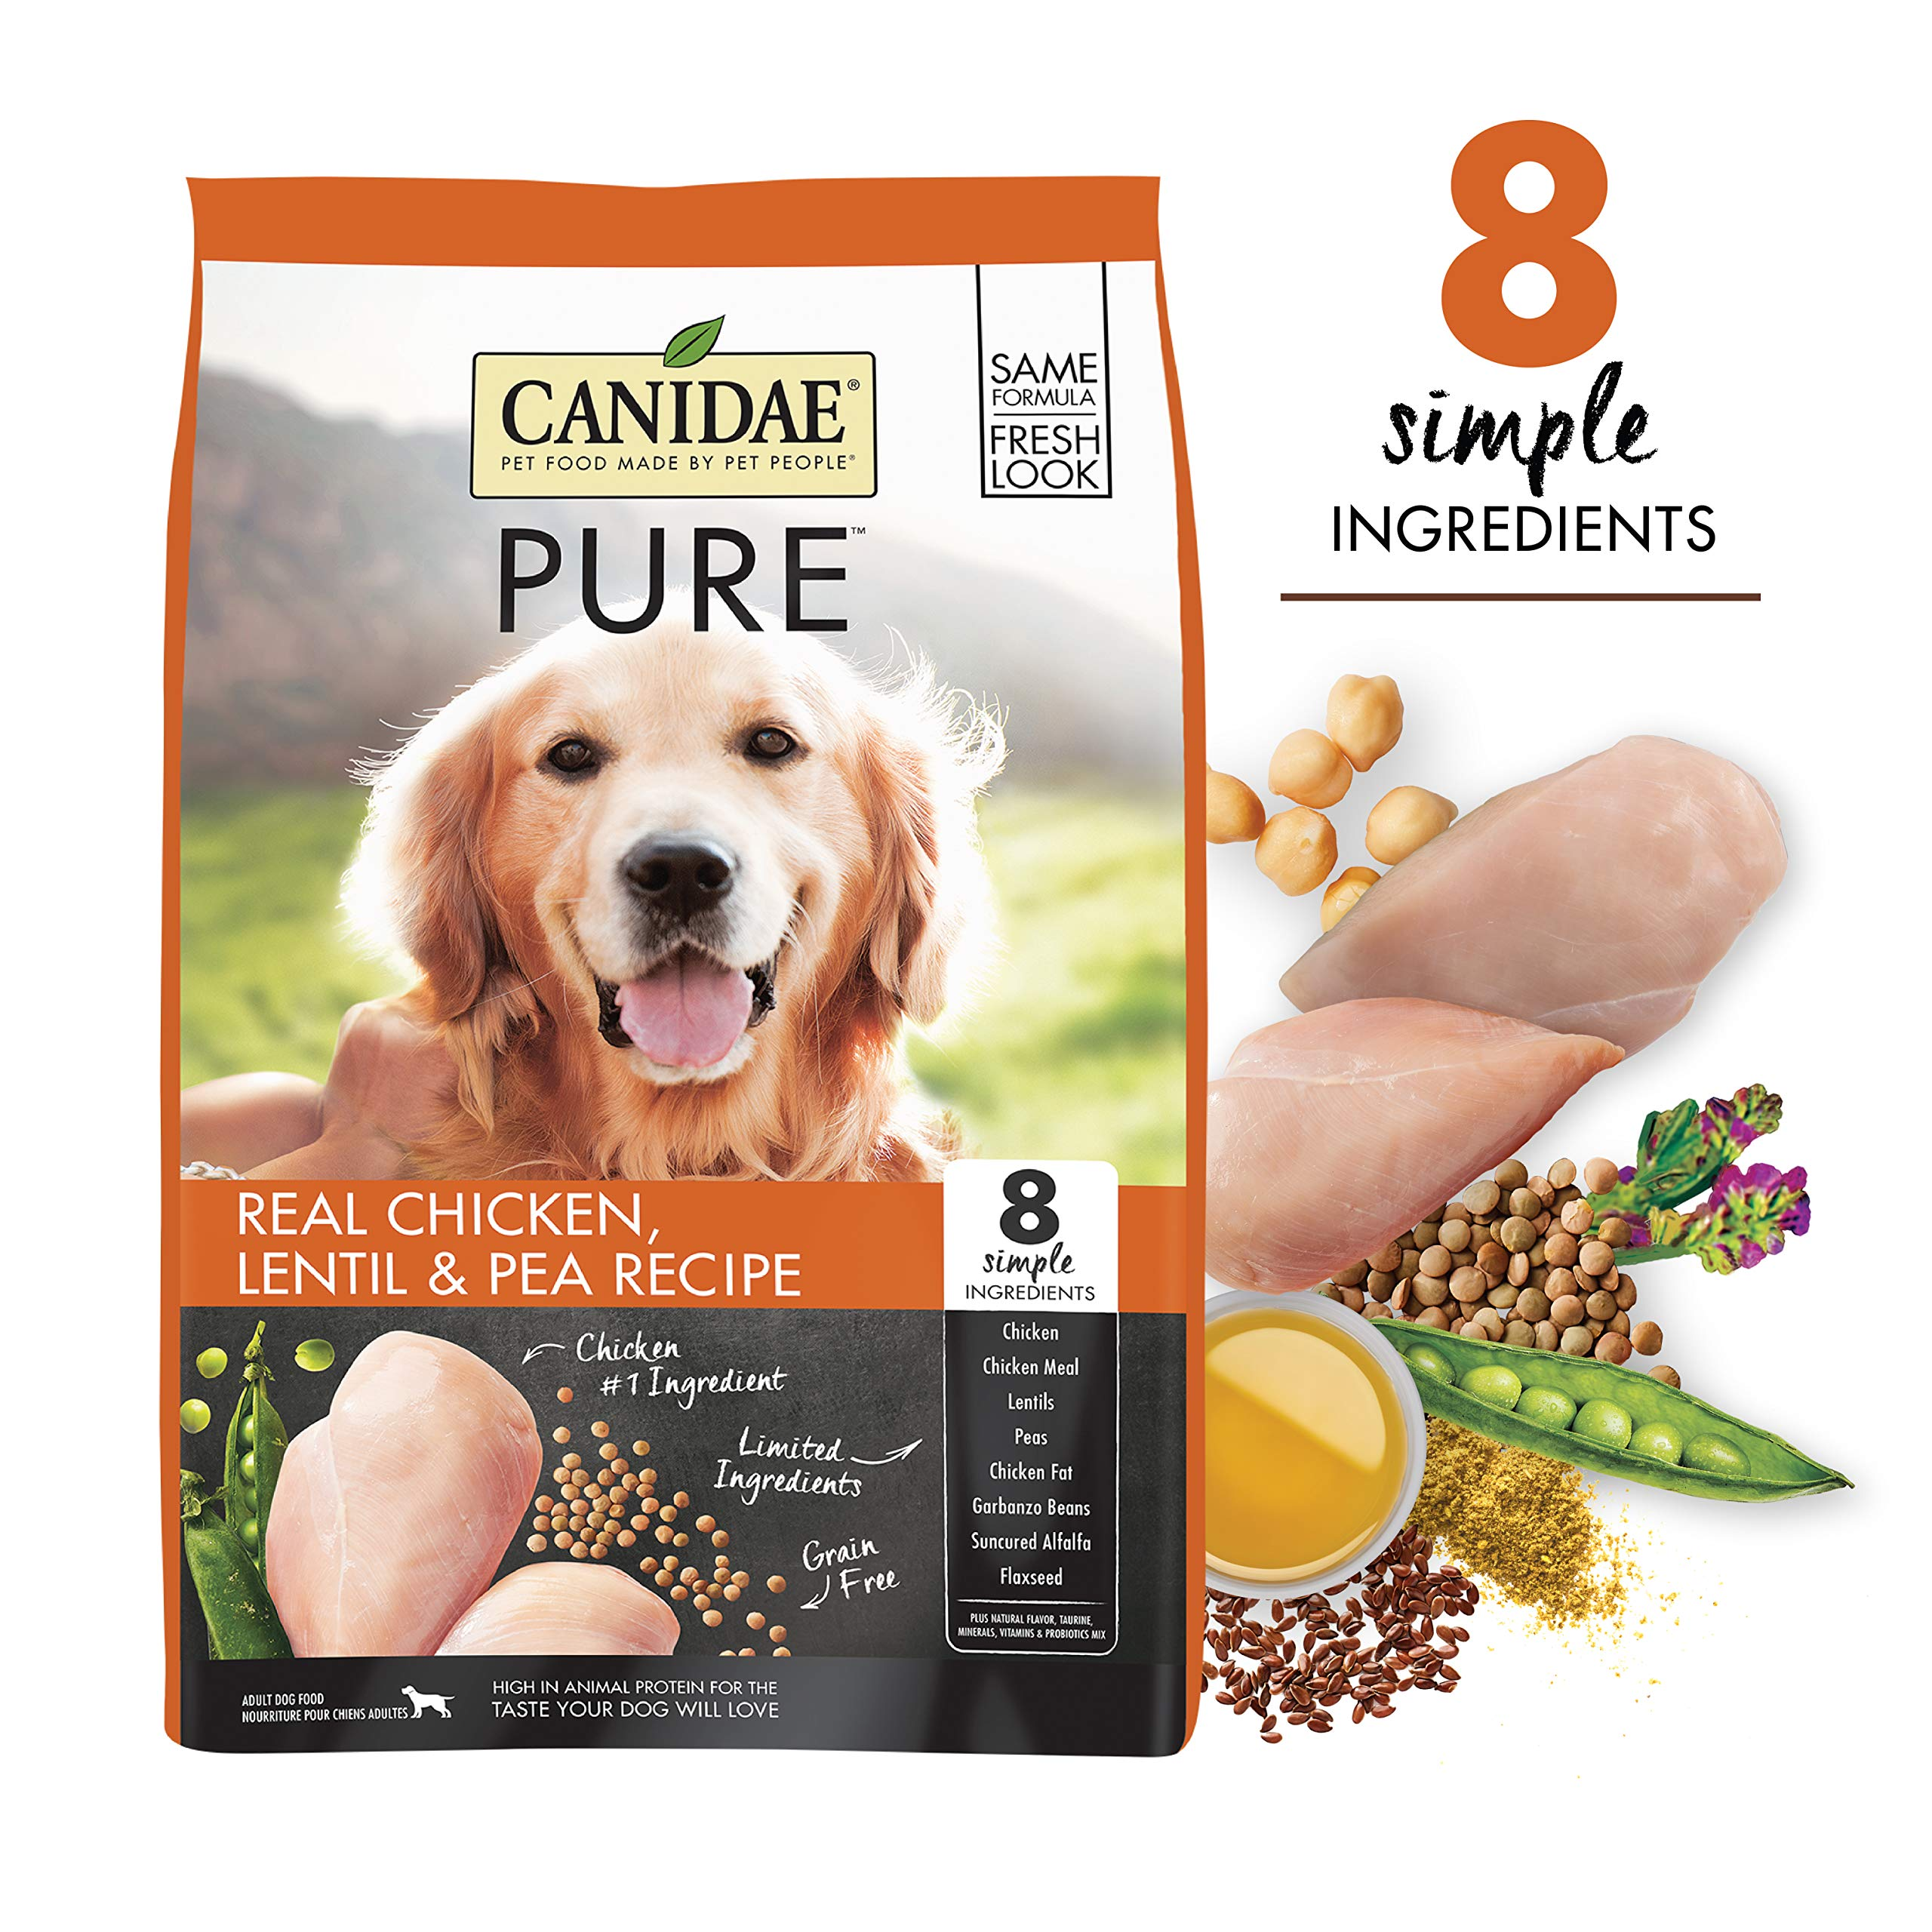 CANIDAE PURE Real Chicken, Limited Ingredient, Grain Free Premium Dry Dog Food by CANIDAE